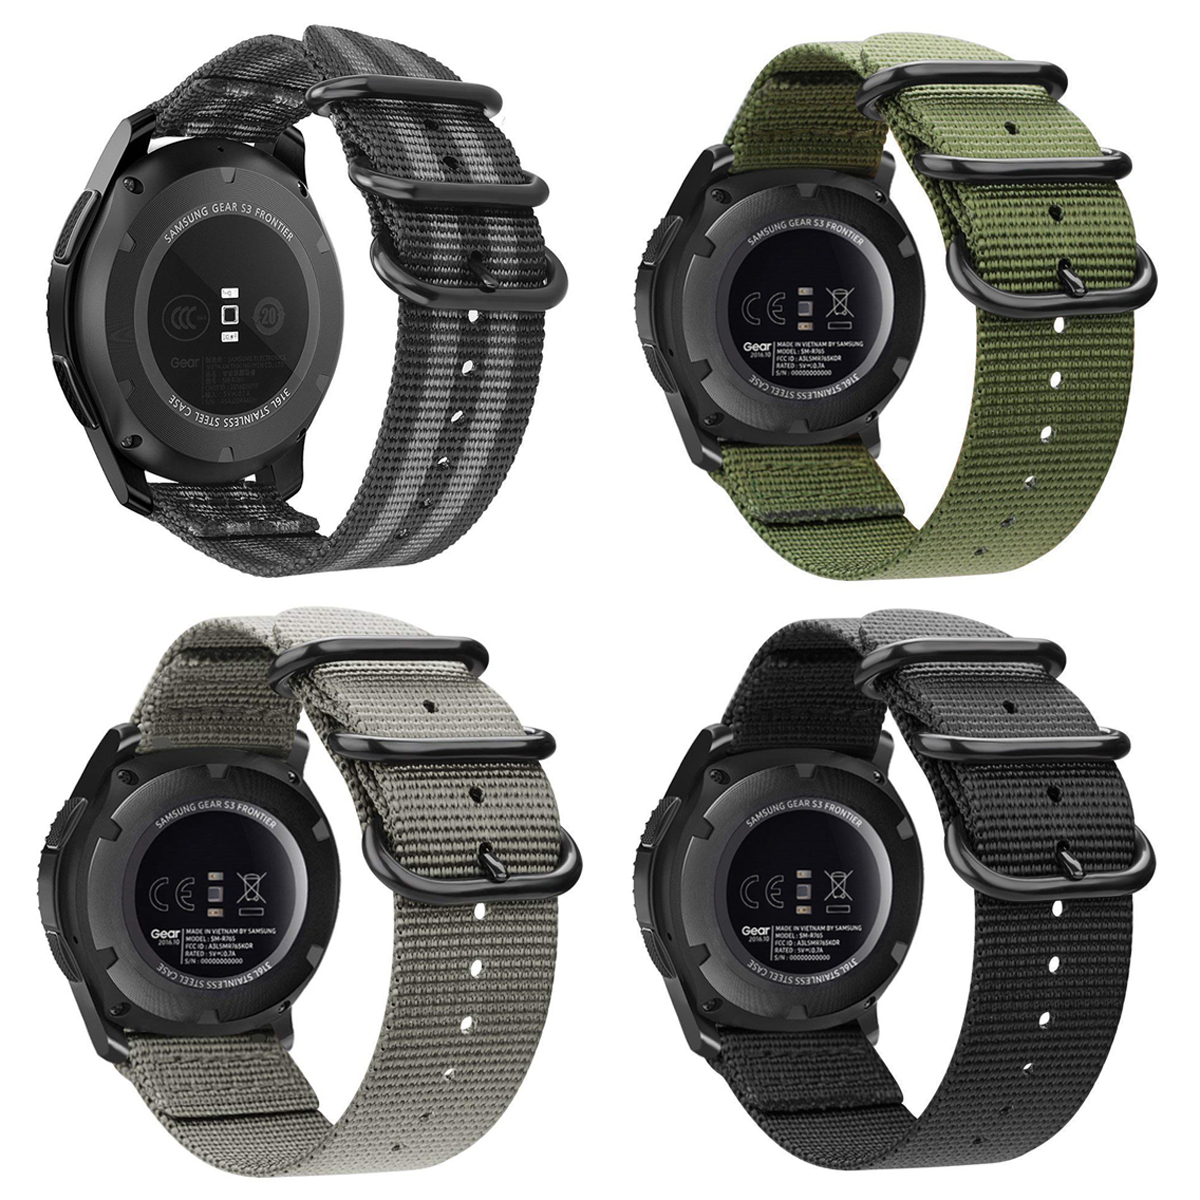 da37e0c97 Details about For Samsung Gear S3 Classic / Frontier Smart Watch Band Wrist  Strap Woven Nylon